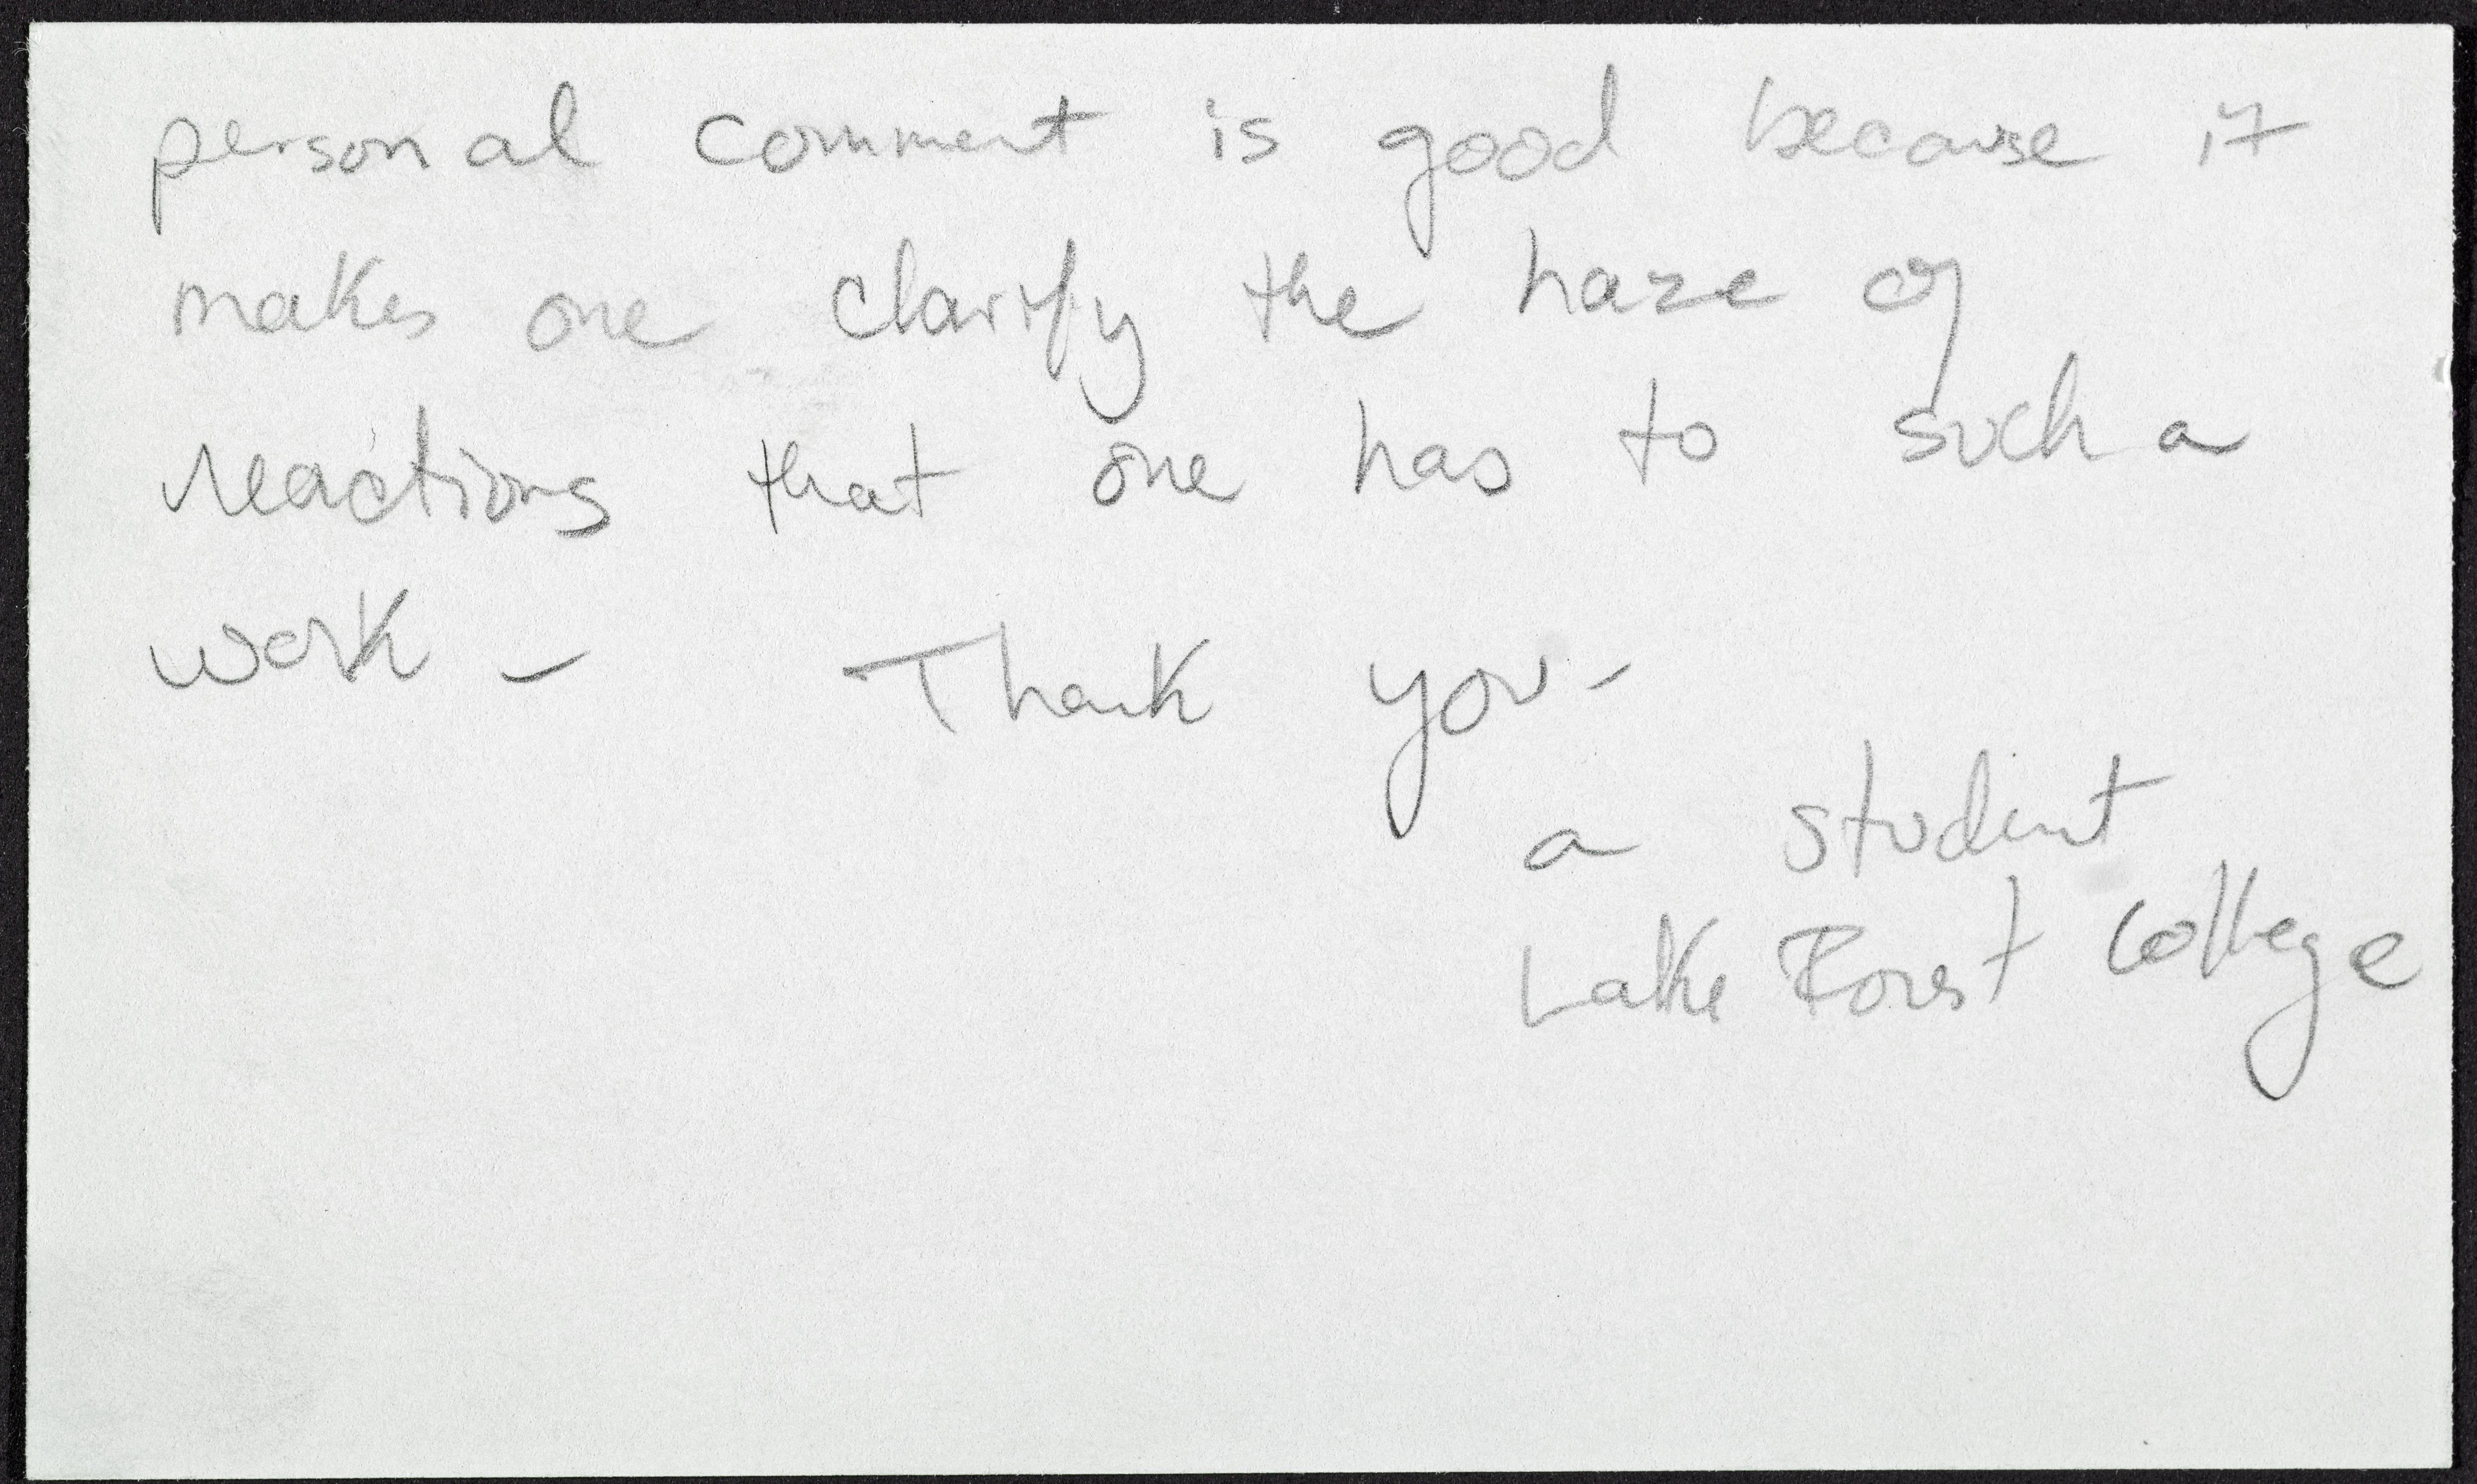 """An index card with handwritten text reads """"personal comment is good because it makes one clarify the haze of reactions that one has to such a work. Thank you. a student at Lake Forest College."""""""